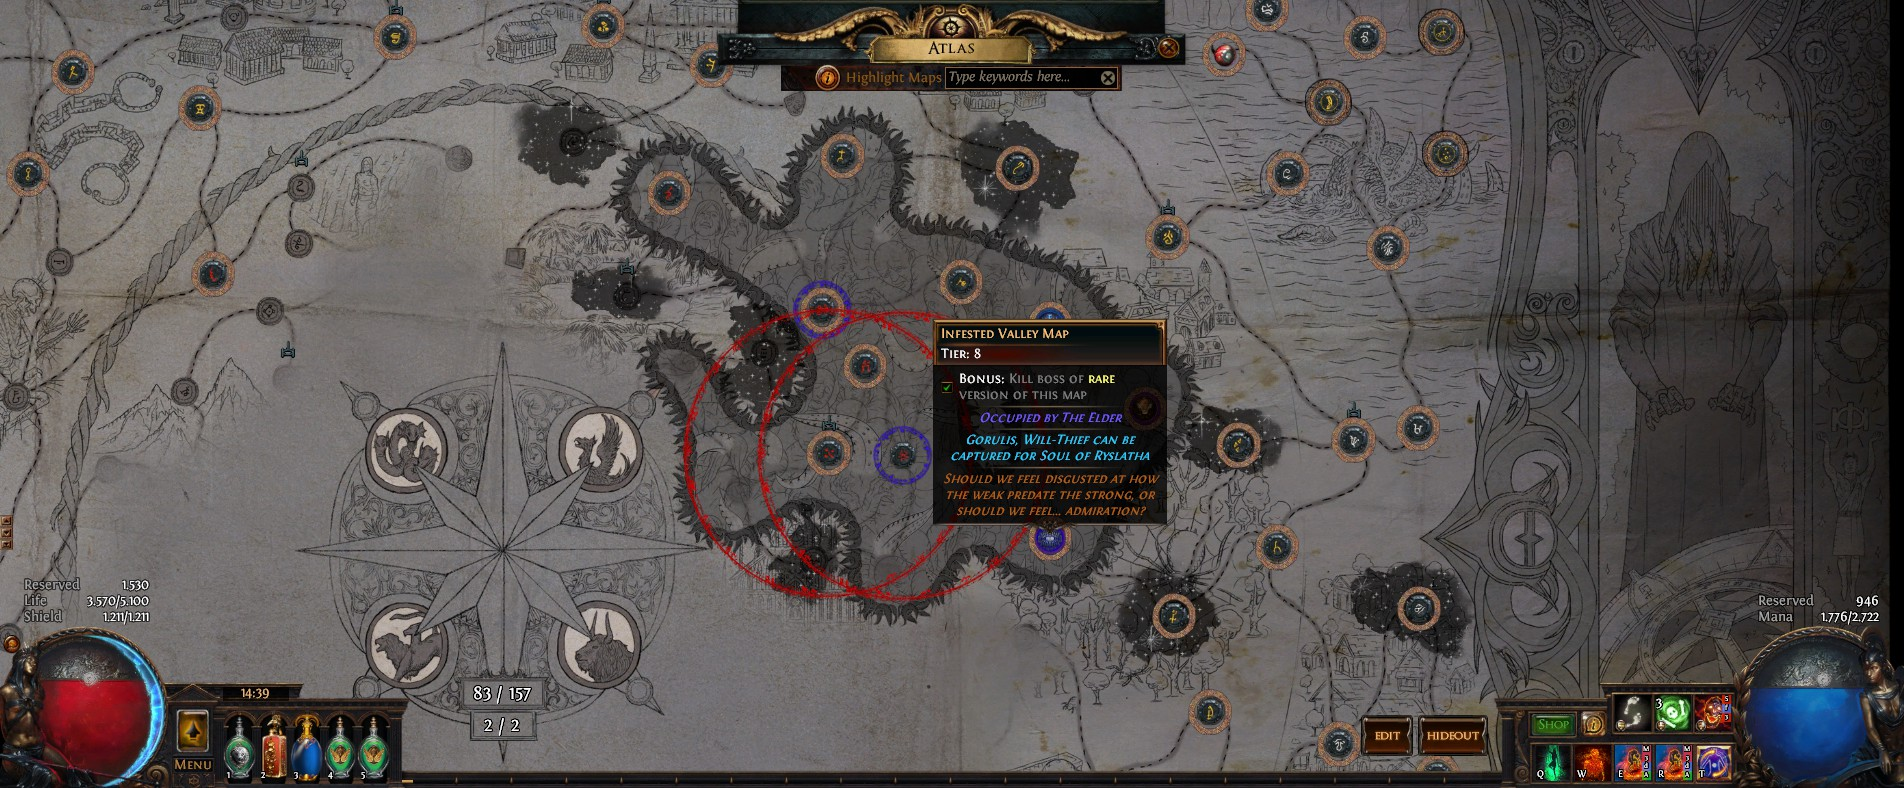 Forum bug reports elder guardian cannot be summoned on forum bug reports elder guardian cannot be summoned on infested valley map important path of exile gumiabroncs Gallery